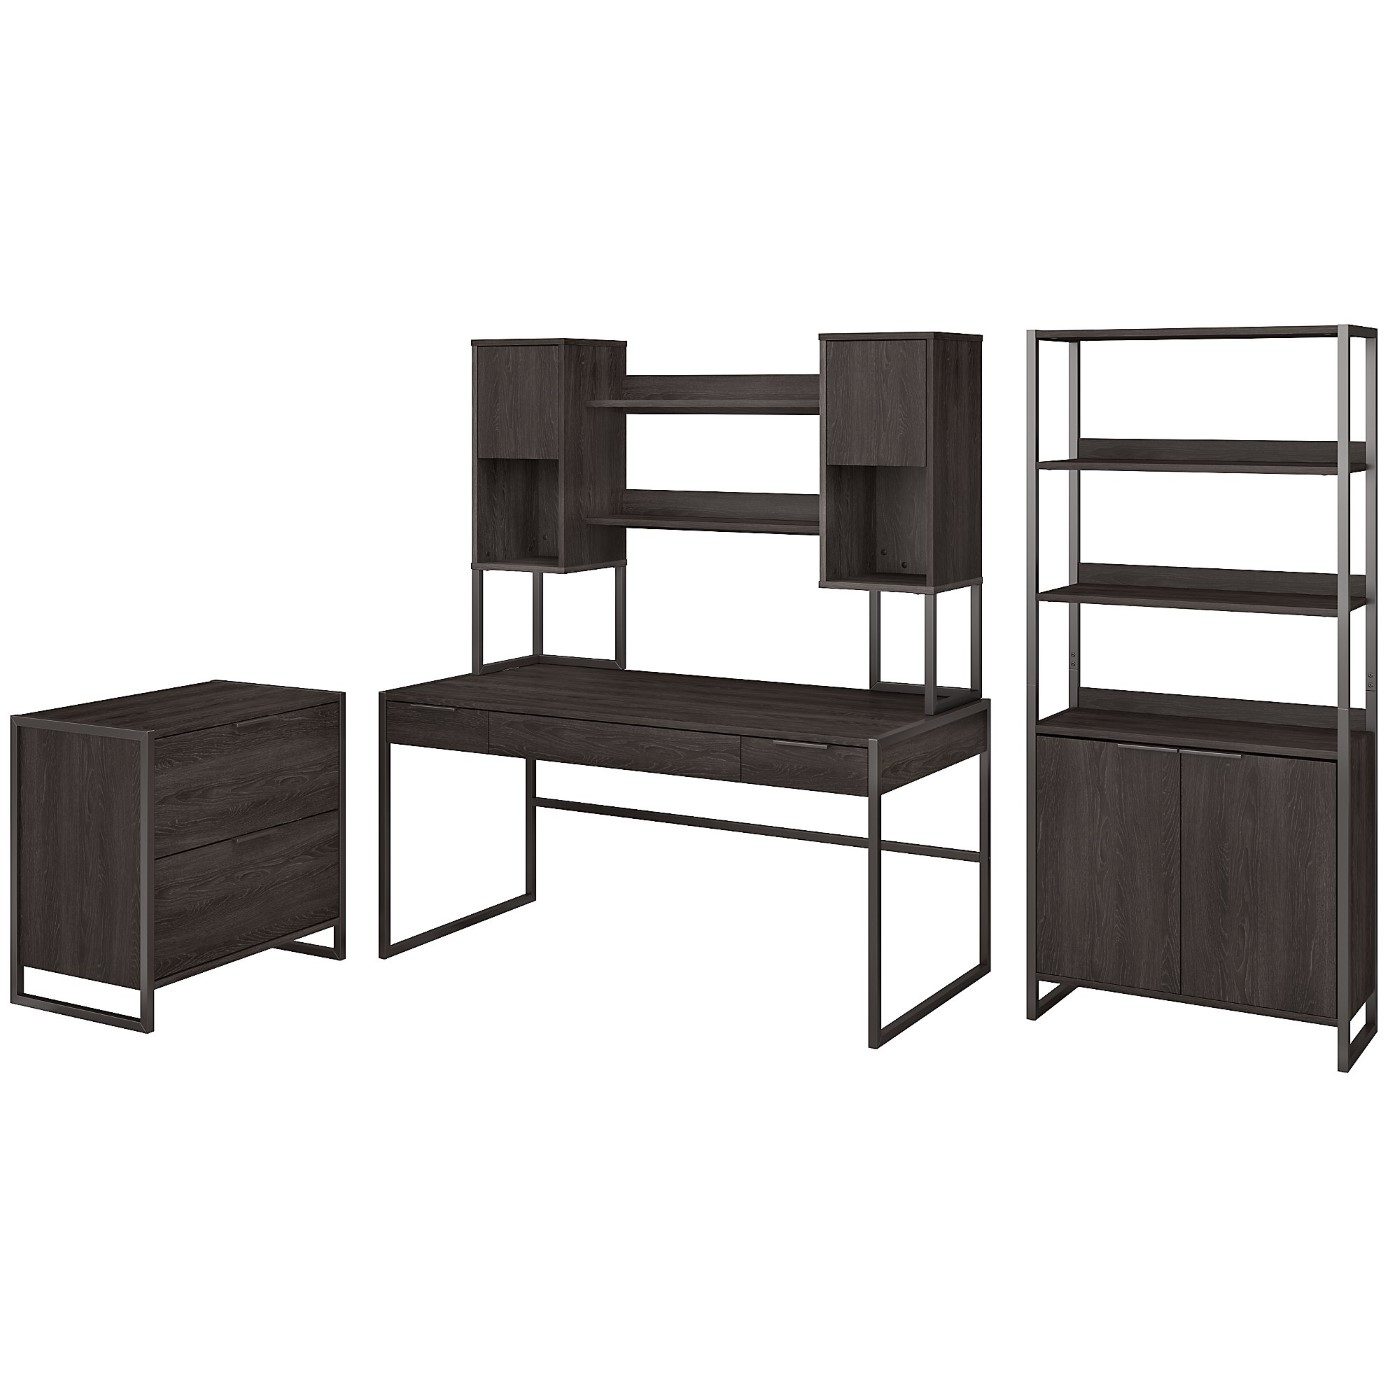 </b></font><b>The kathy ireland� Atria 60W Writing Desk with Hutch, Lateral File Cabinet and 5 Shelf Bookcase is Sustainable Eco Friendly Furniture. Includes Free Shipping! 30H x 72L x 72W</font>. <p>RATING:&#11088;&#11088;&#11088;&#11088;&#11088;</b></font></b>